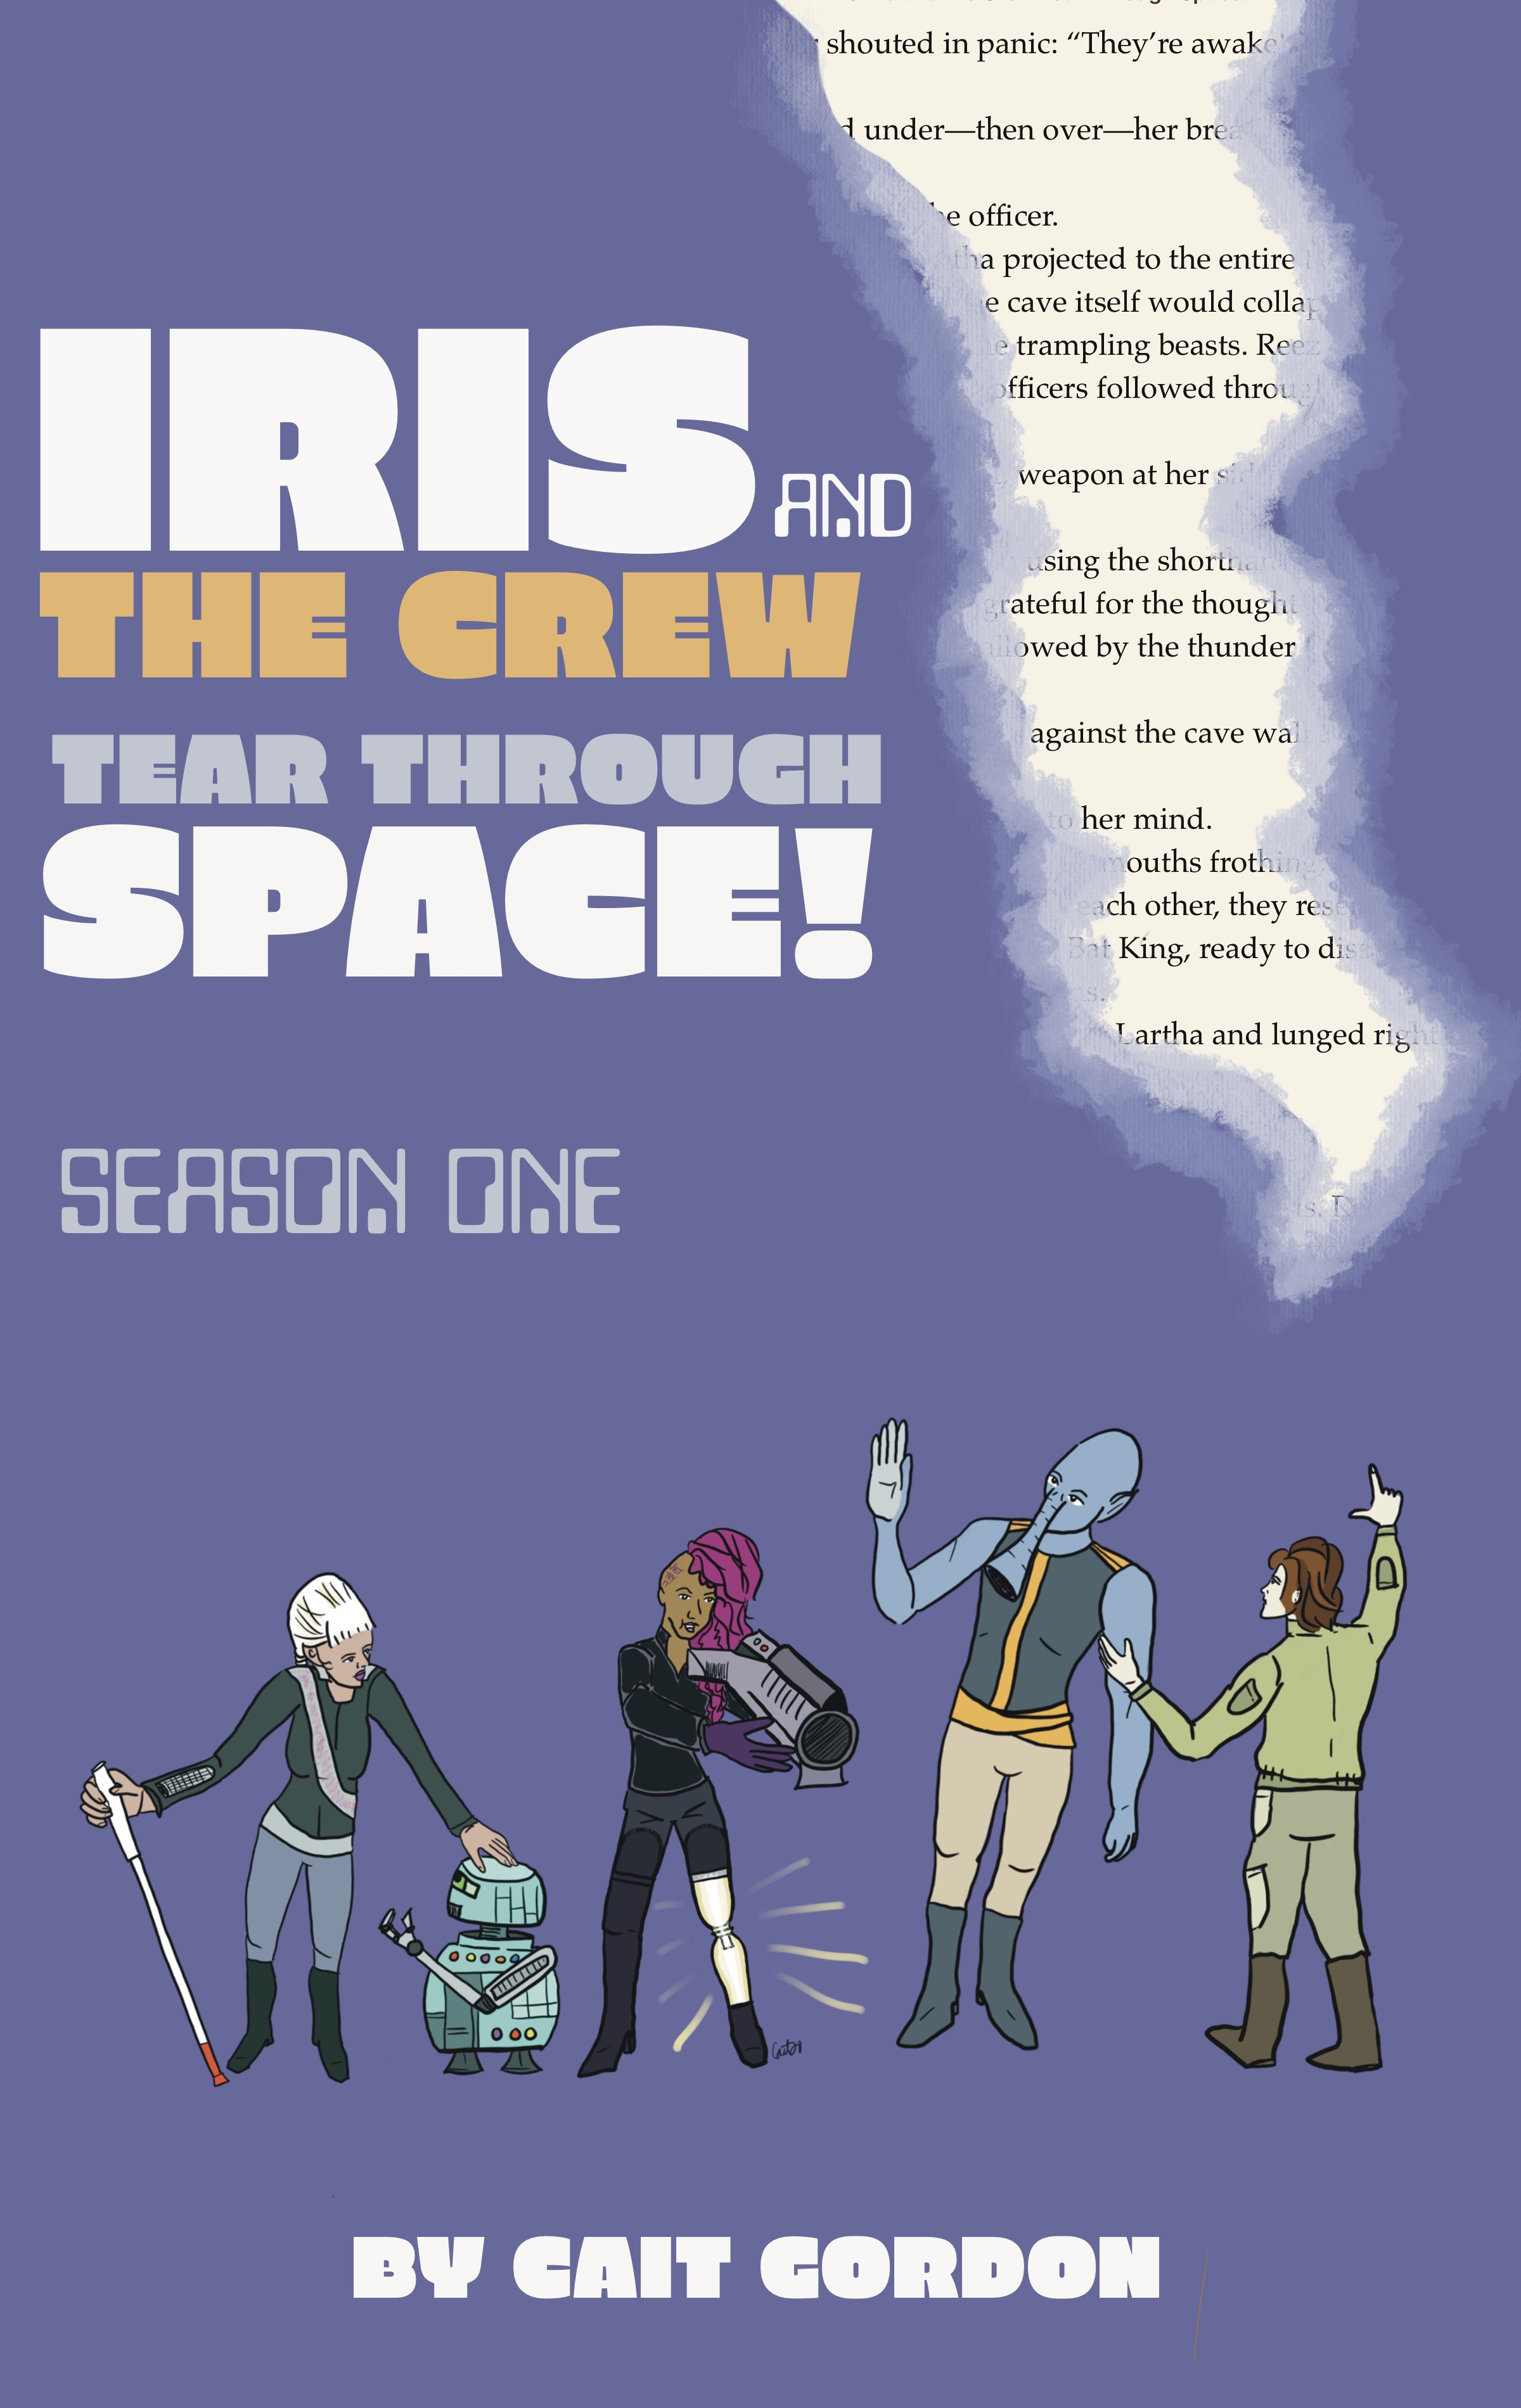 """ID: Book cover concept by Cait Gordon. Purple background with what appears to be a tear in the cover of the book, revealing the words inside. From left to right: Iris, a platinum-haired woman in a grey uniform with a sash, bending over an aqua robot. Her left hand is on the bot's head and her right is holding a low-vision cane. Lartha is brown-skinned with half her head shaved, revealing a tattoo that says, """"Just try it."""" The other half of her head has flowing, wavy magenta locks. She's wearing a black and grey uniform and aiming a large tubular weapon in front of her. She has two prosthetic limbs, and the left one is a glowing beacon with a short black boot. Davan is blue-skinned with pointed ears and a long trunk. He's wearing a sleeves amber and grey uniform and waves to his right. Herb is pale skinned with brown and russet wavy hair in chunky layers, just hitting his shoulders. He's in a baggy green mechanical uniform with pockets. Herb's back is to us as he points to the tear while trying to get Davan's attention."""